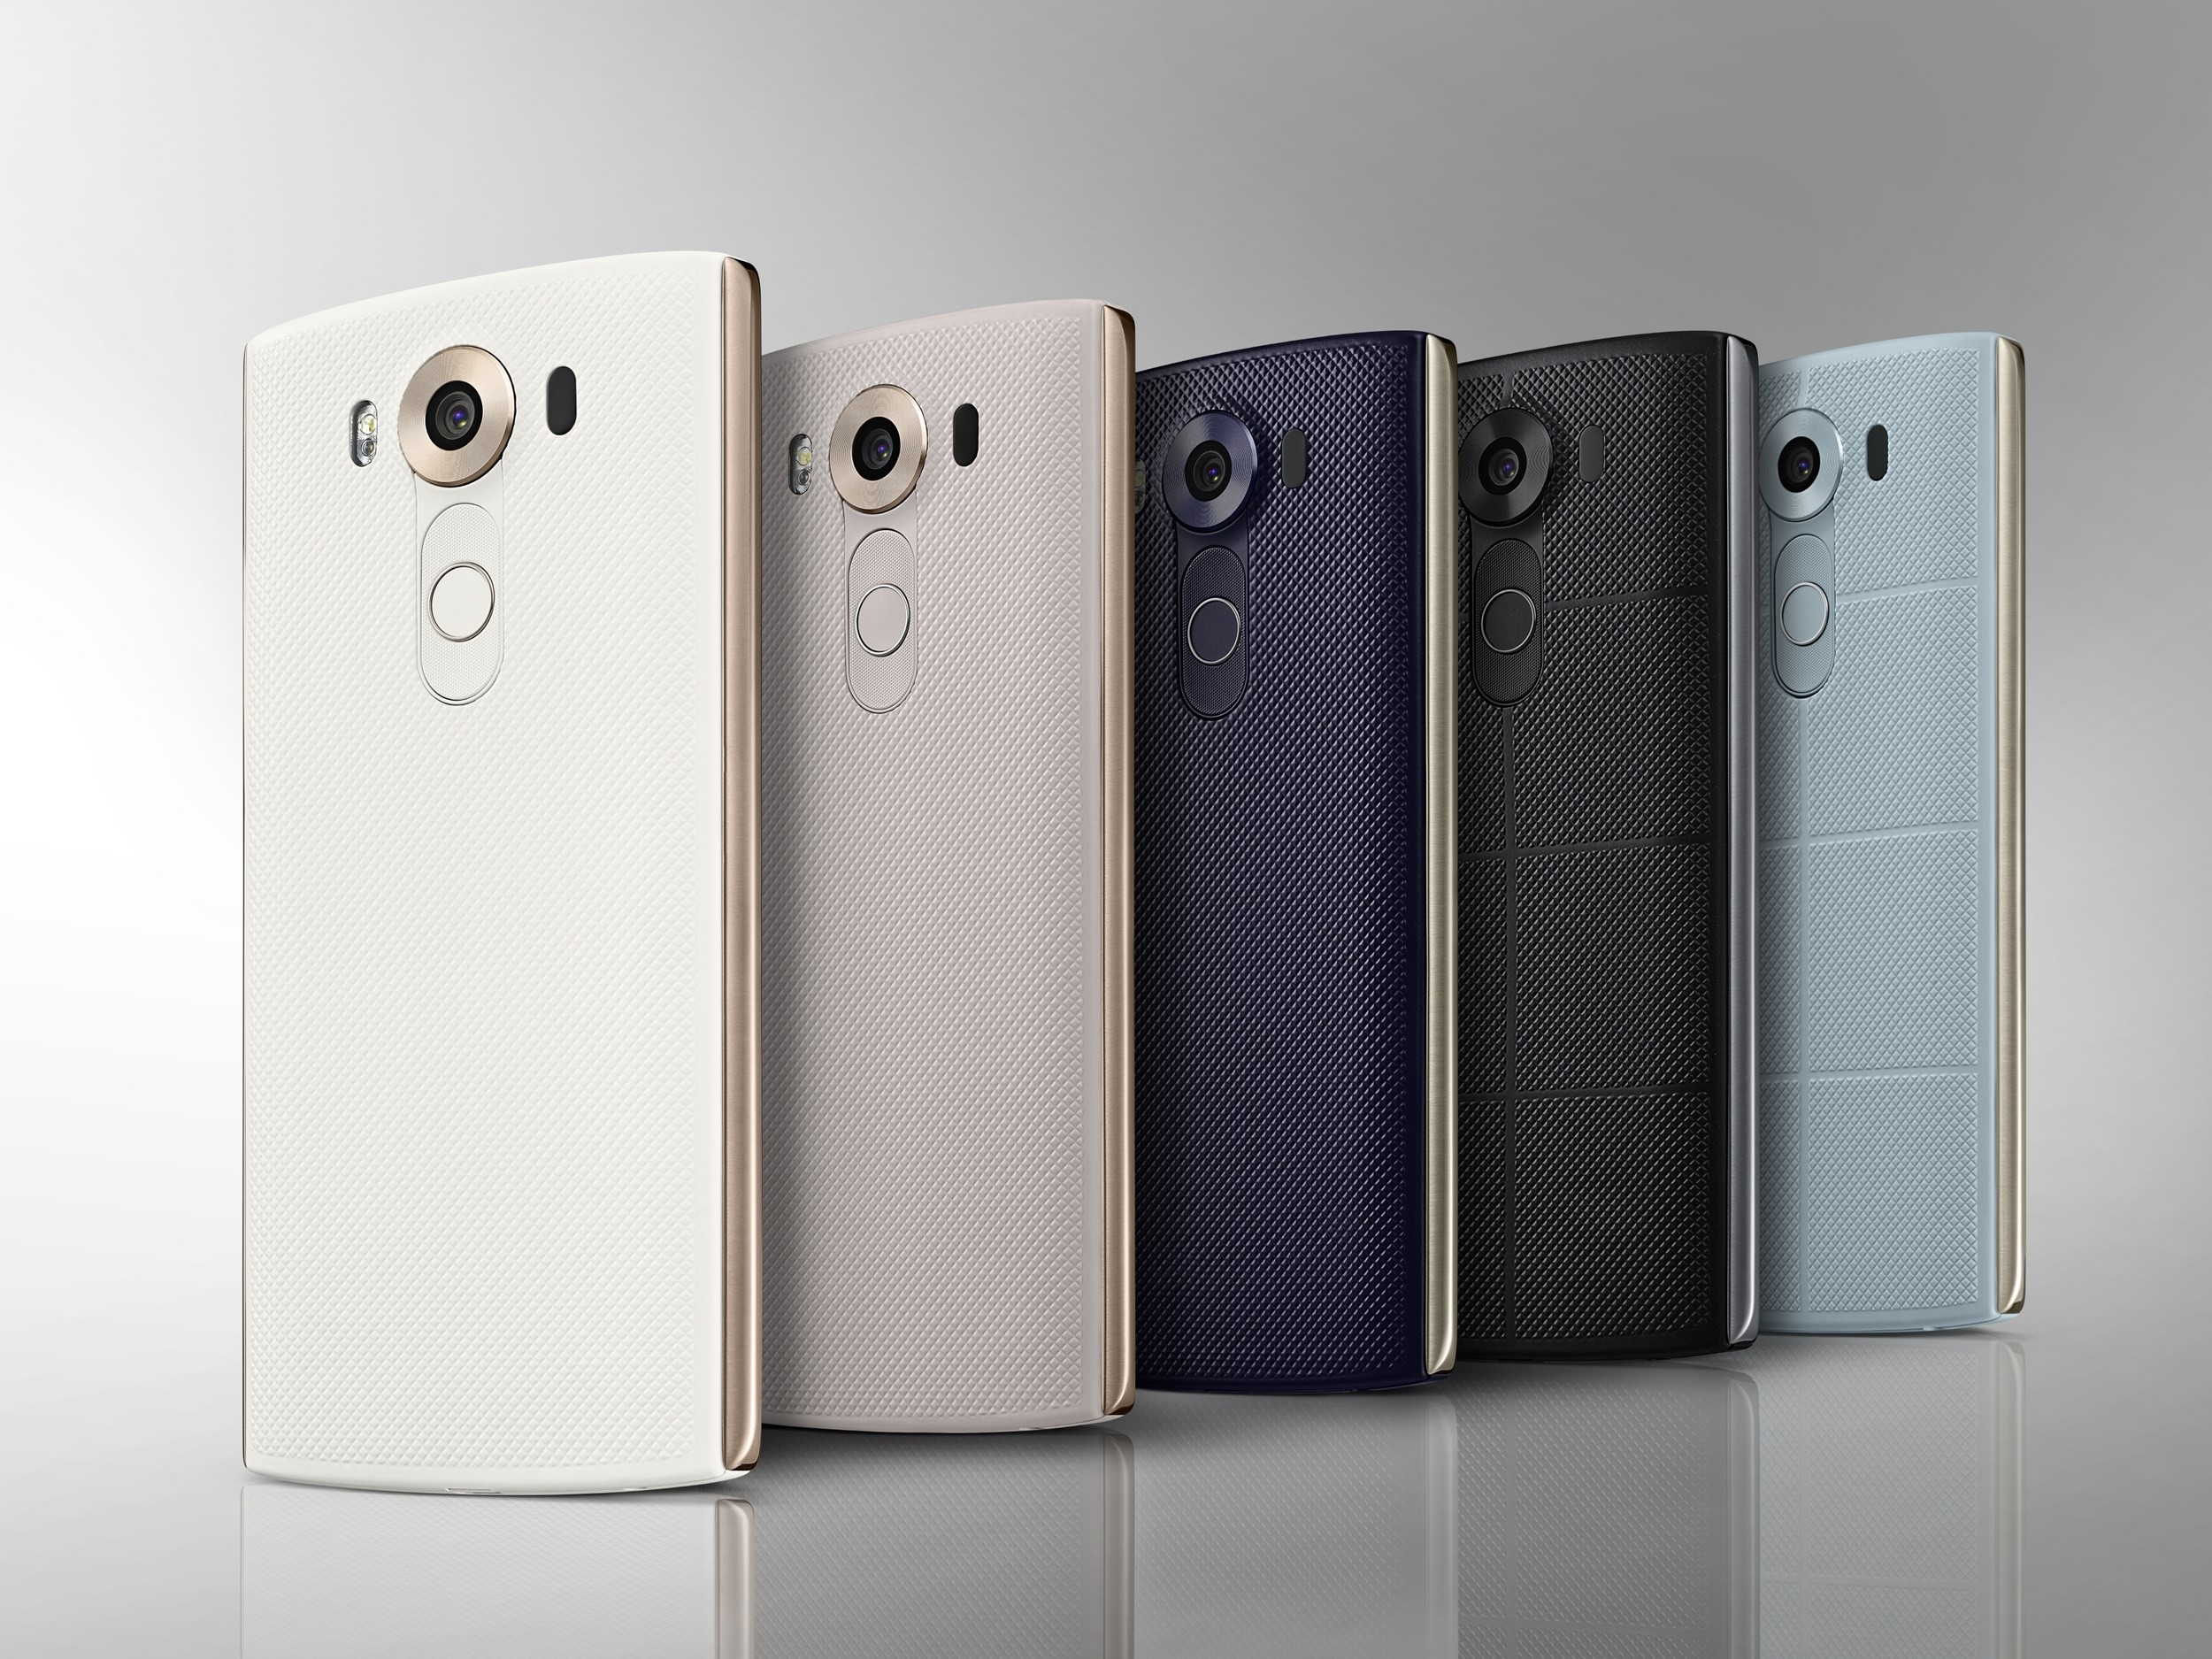 LG UNVEILS V10, A SMARTPHONE DESIGNED WITH CREATIVITY IN ...